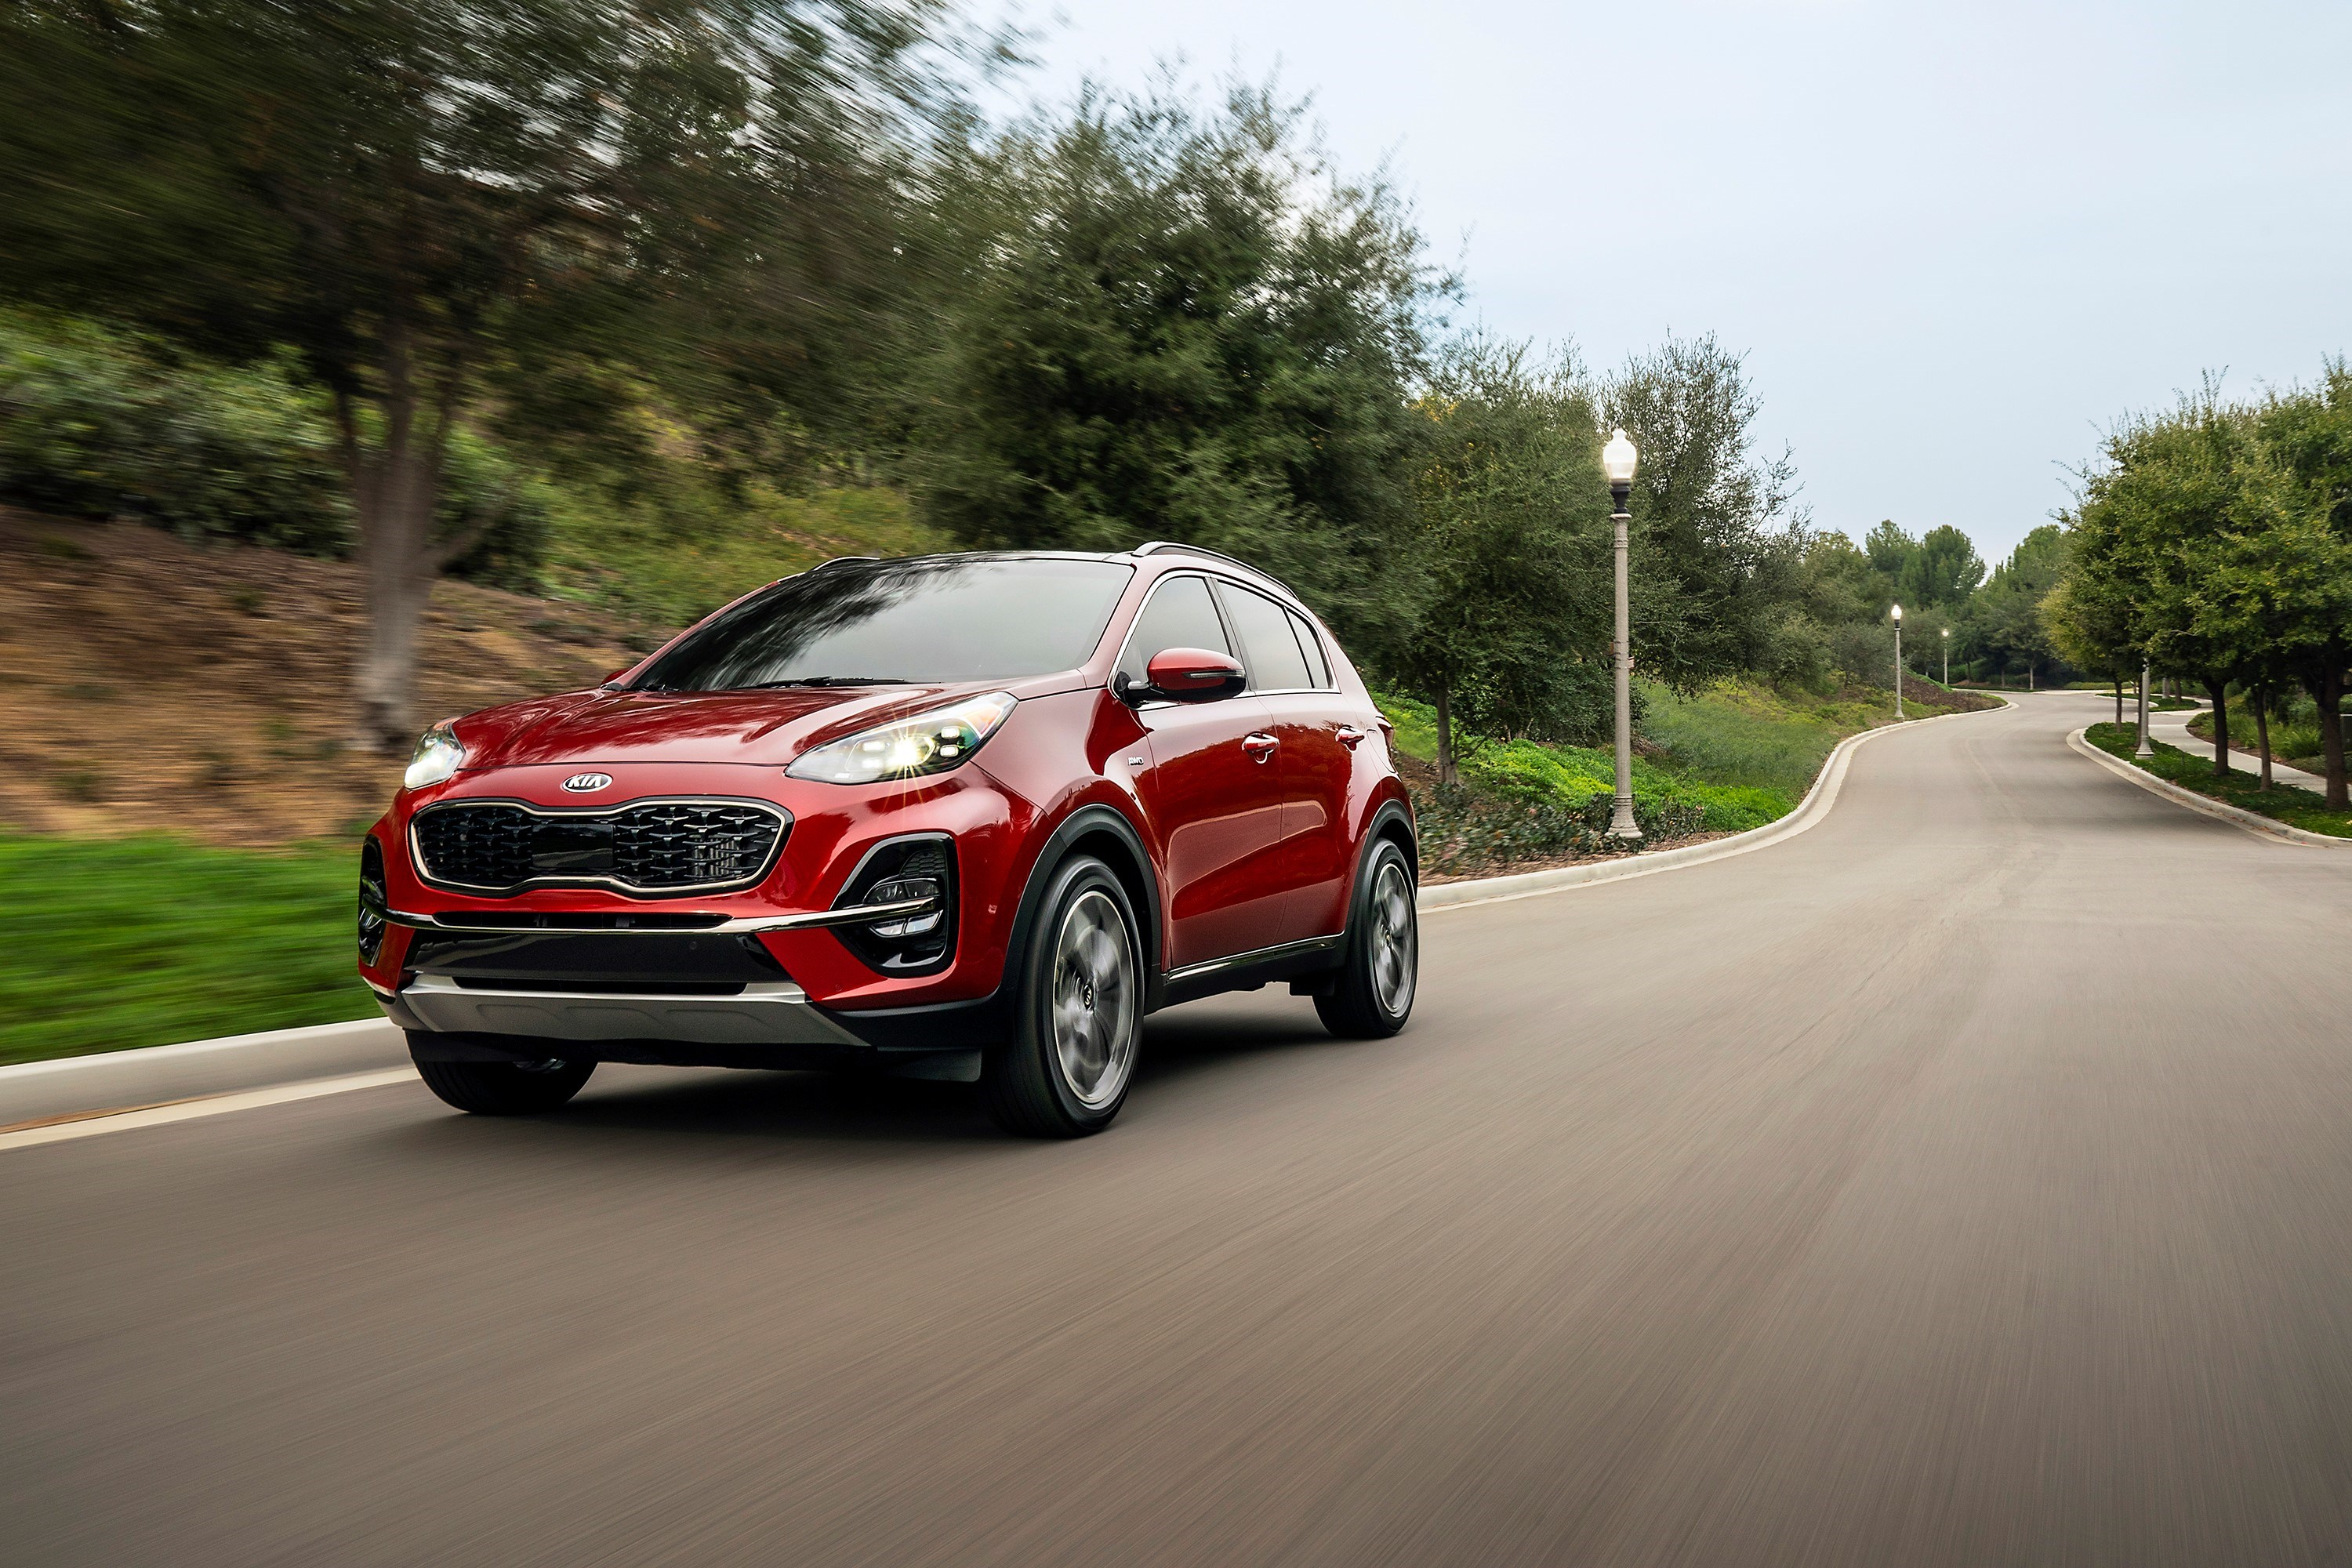 New And Used Kia Sportage Prices Photos Reviews Specs The Car Connection